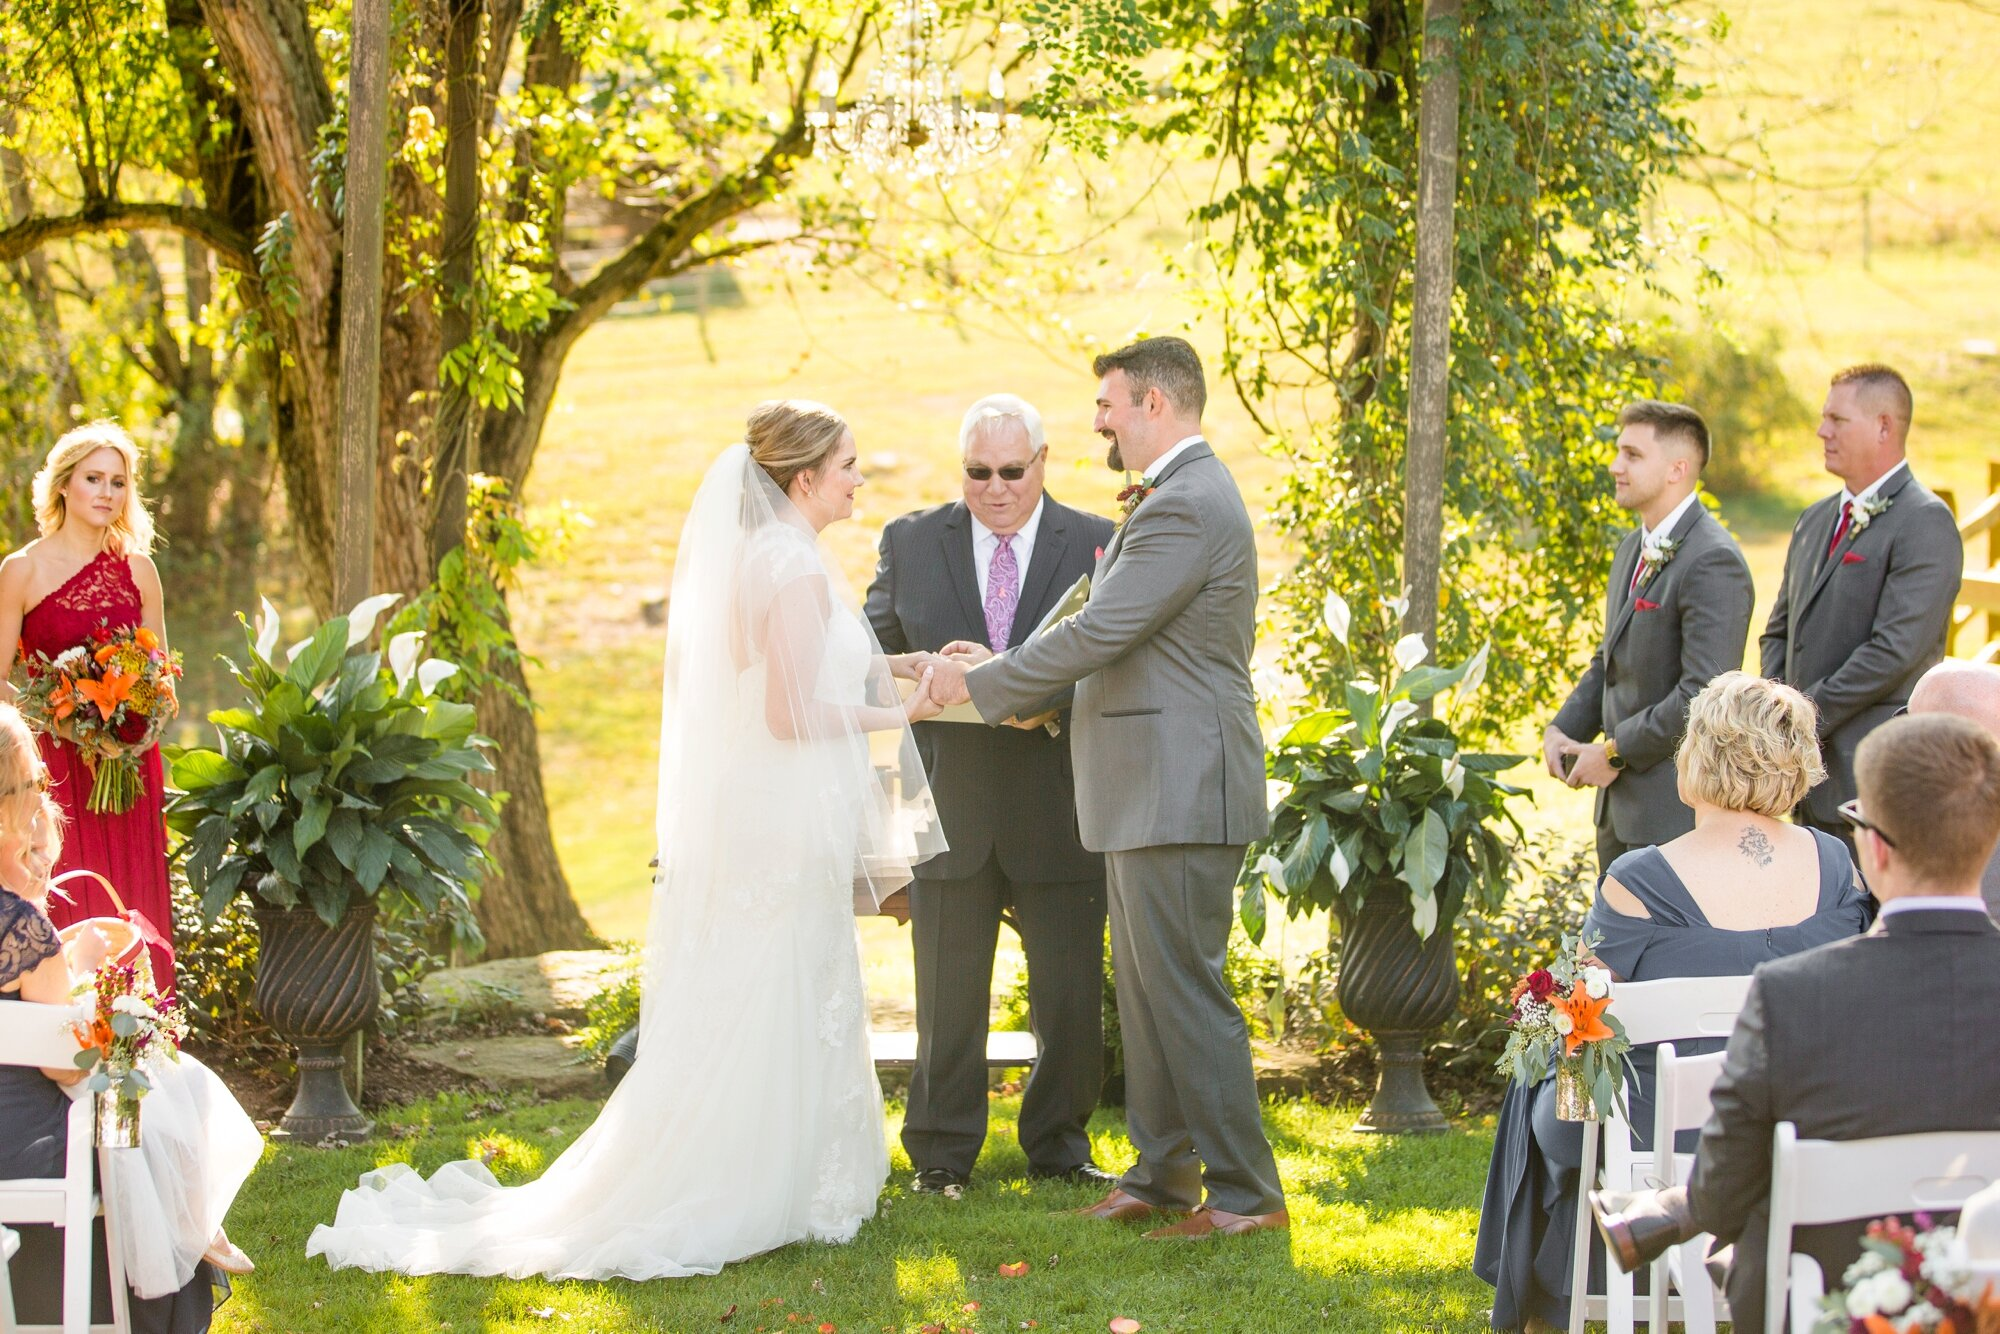 shady elms farm wedding photos, pittsburgh wedding venues, red wedding inspiration, farm wedding venues pittsburgh, hickory pa wedding venues, pittsburgh wedding photographer